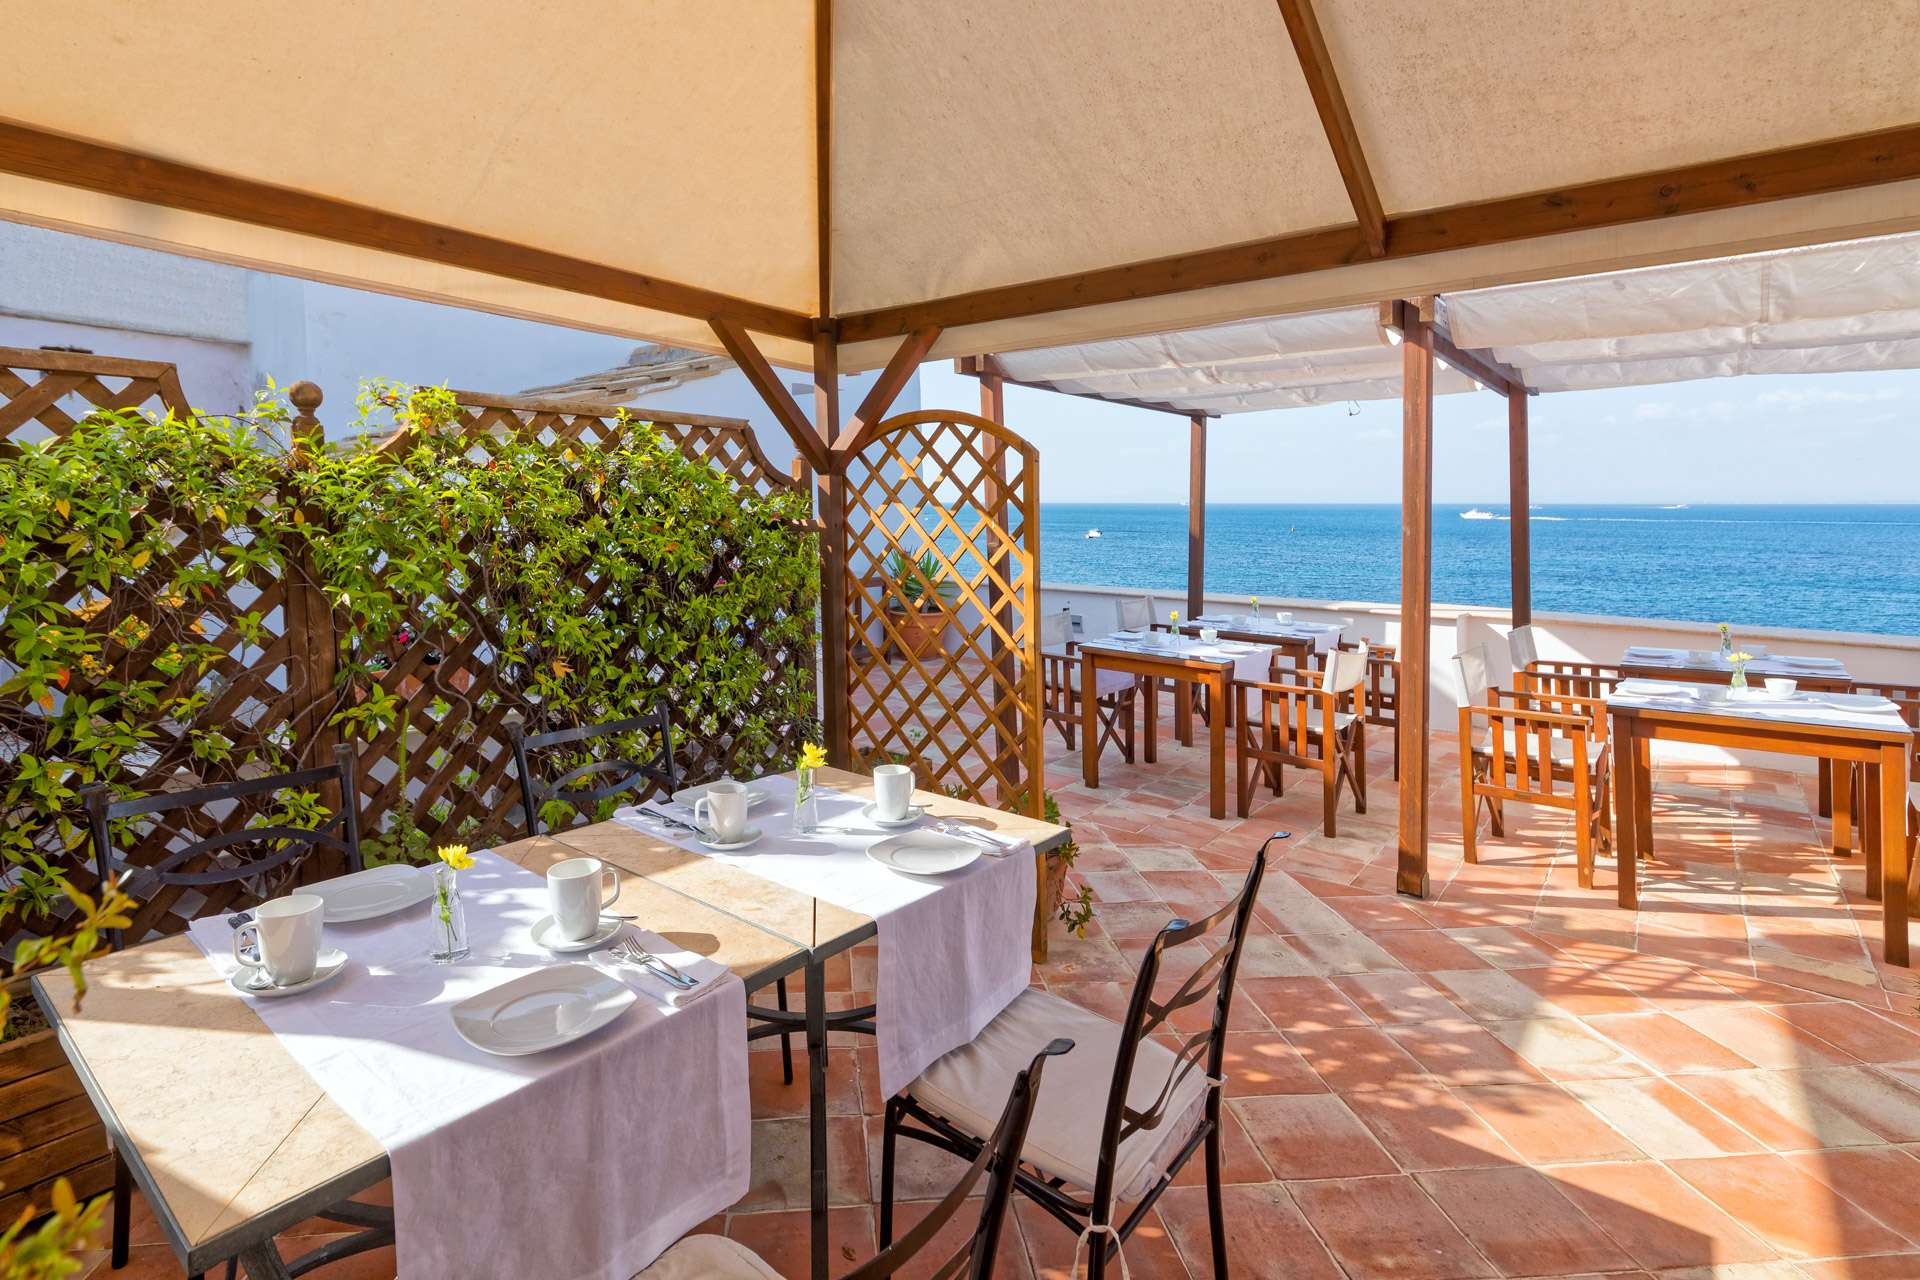 Ischia-Bed-and-Breakfast-Villa-Lieta-COLAZIONE-05-1920x1280